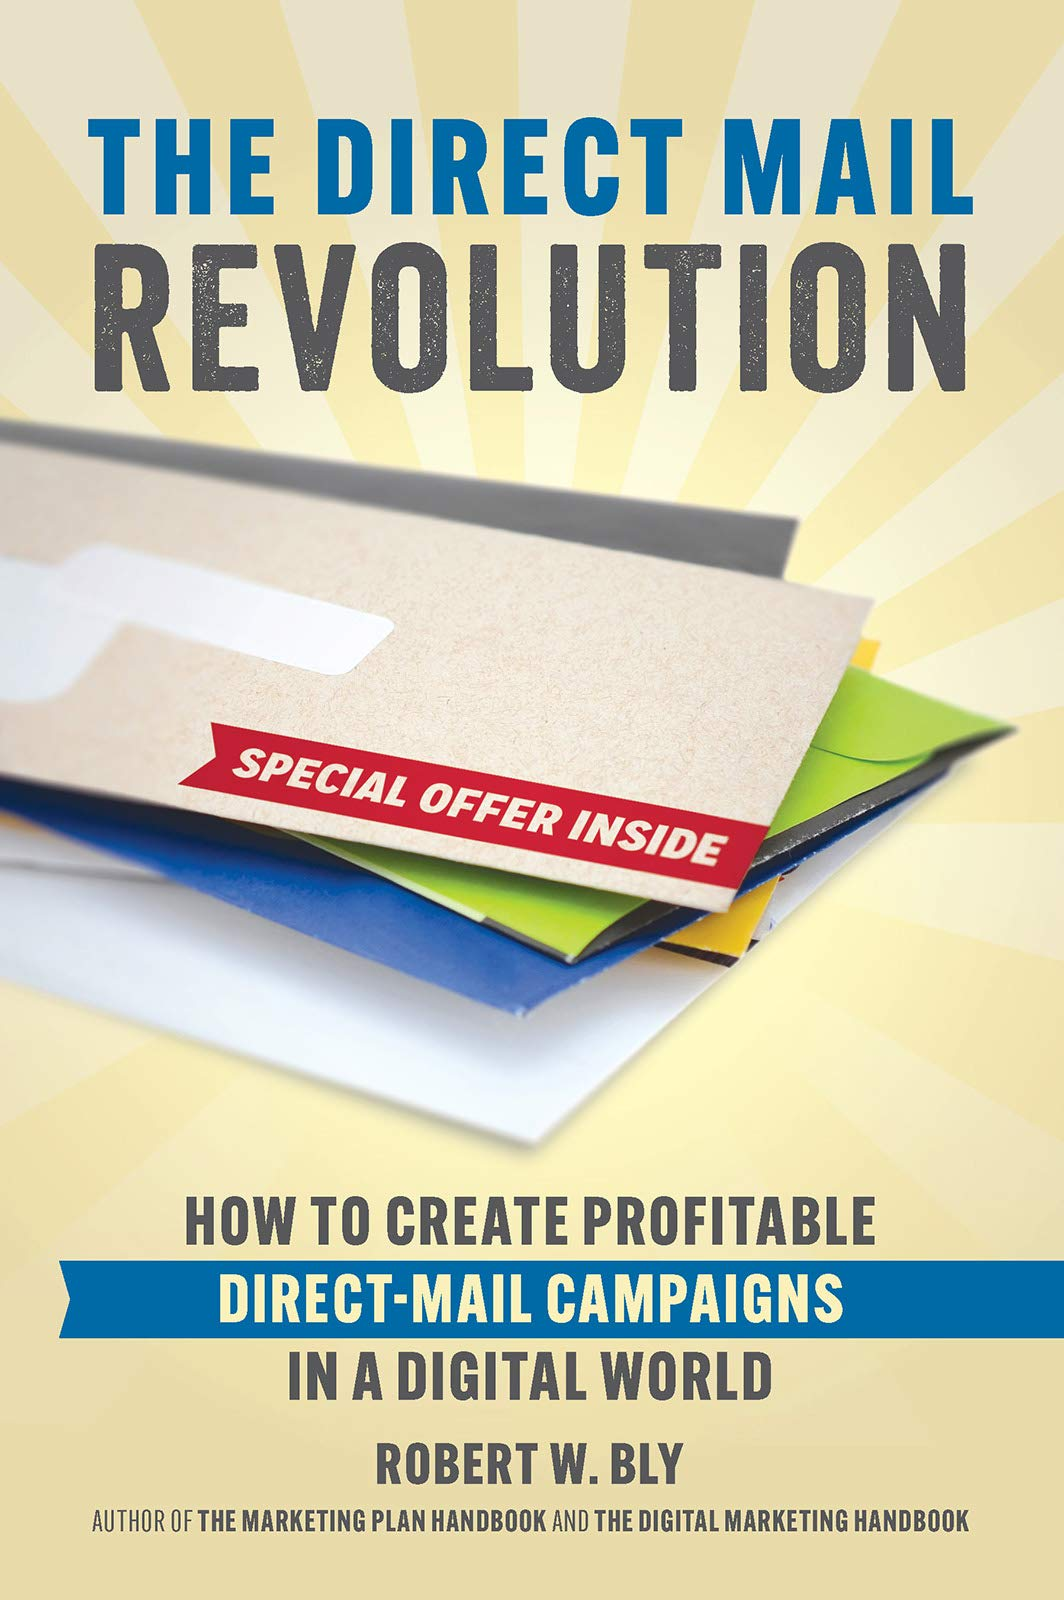 Direct Mail Revolution Profitable Campaigns product image